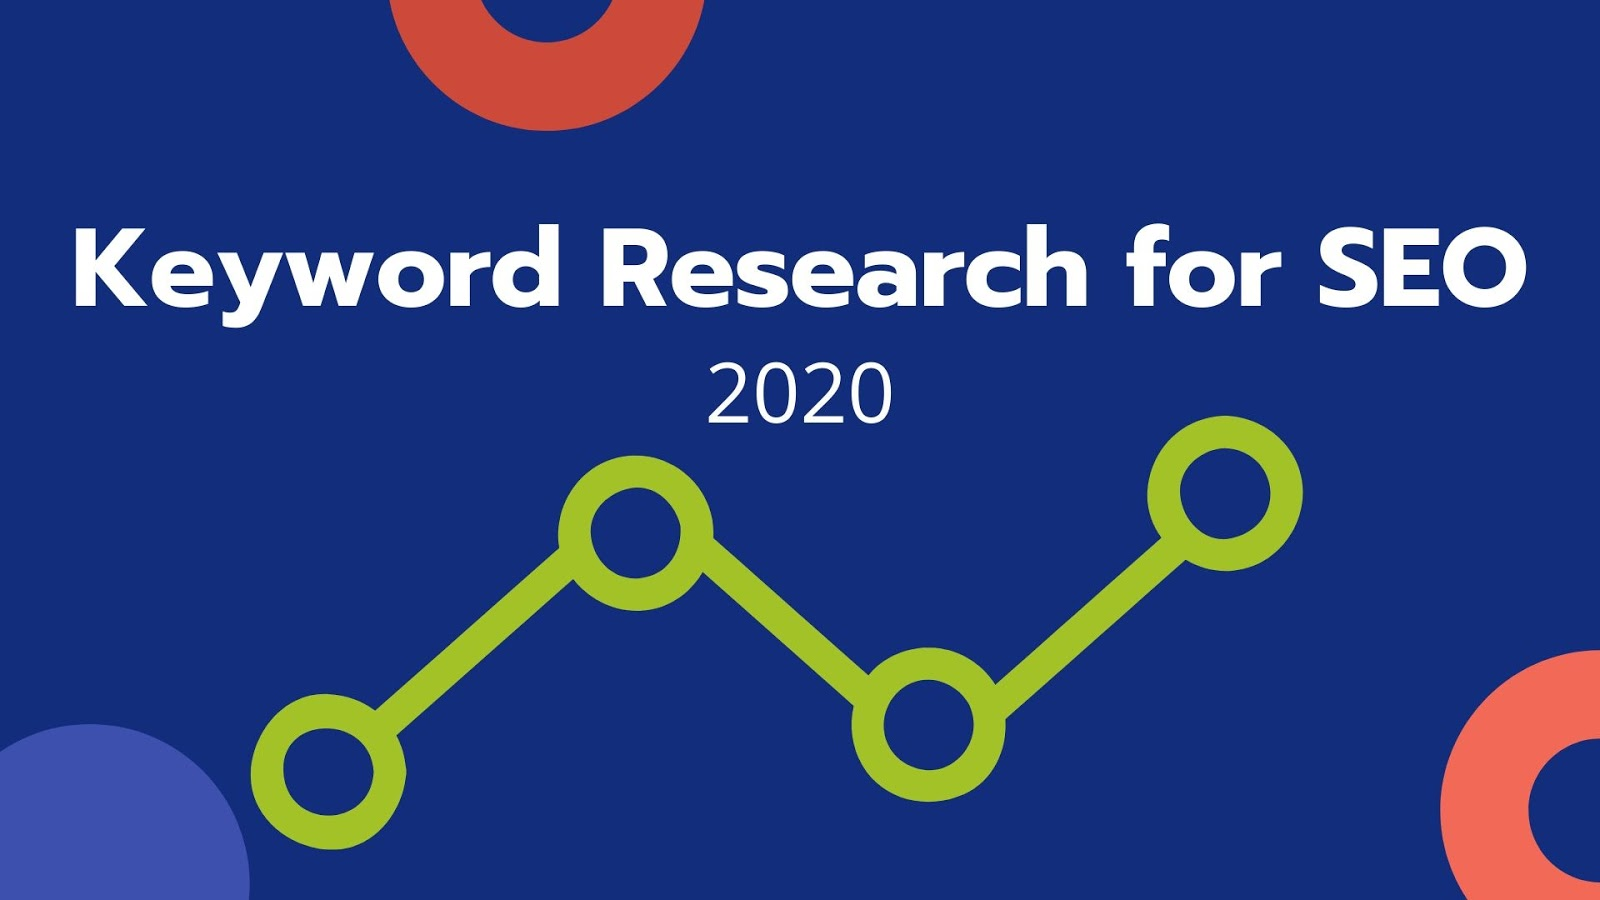 keyword research for SEO, Search engine optimization